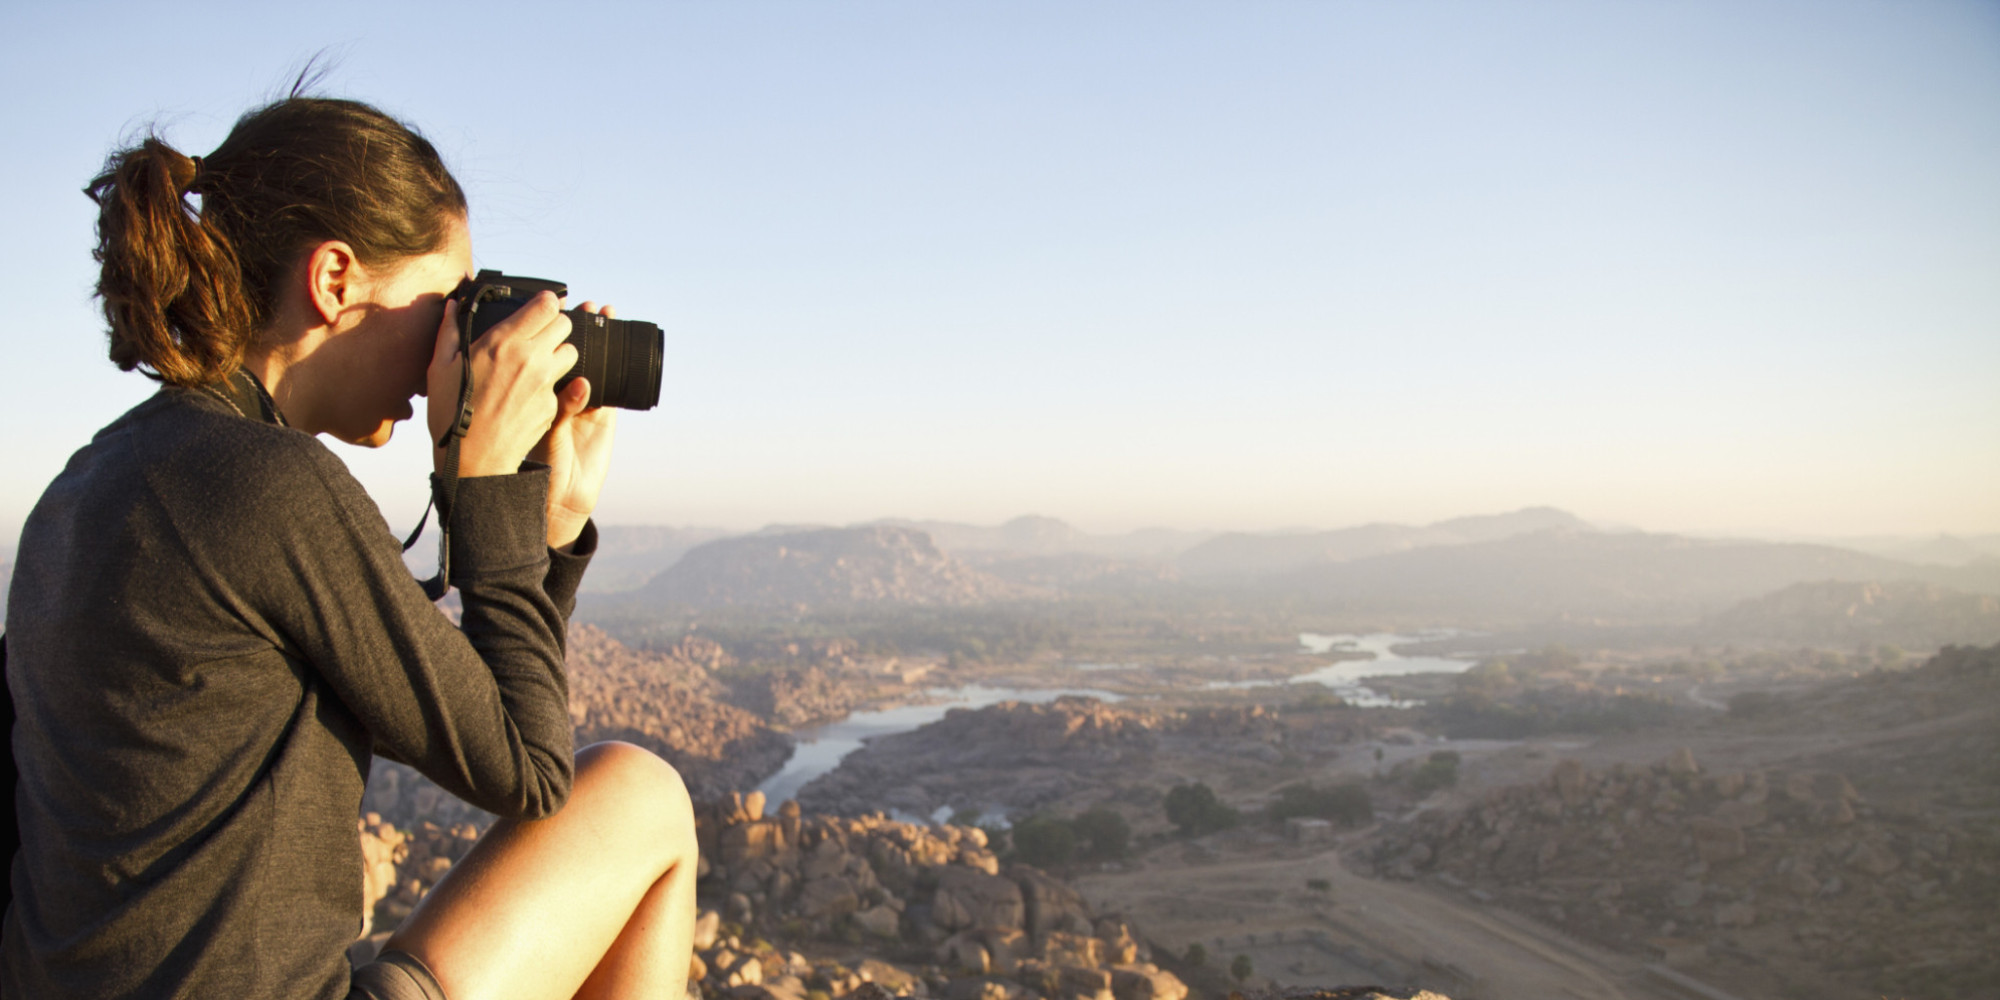 India, Karnataka, Young female tourist photographing on top of hill in Hampi